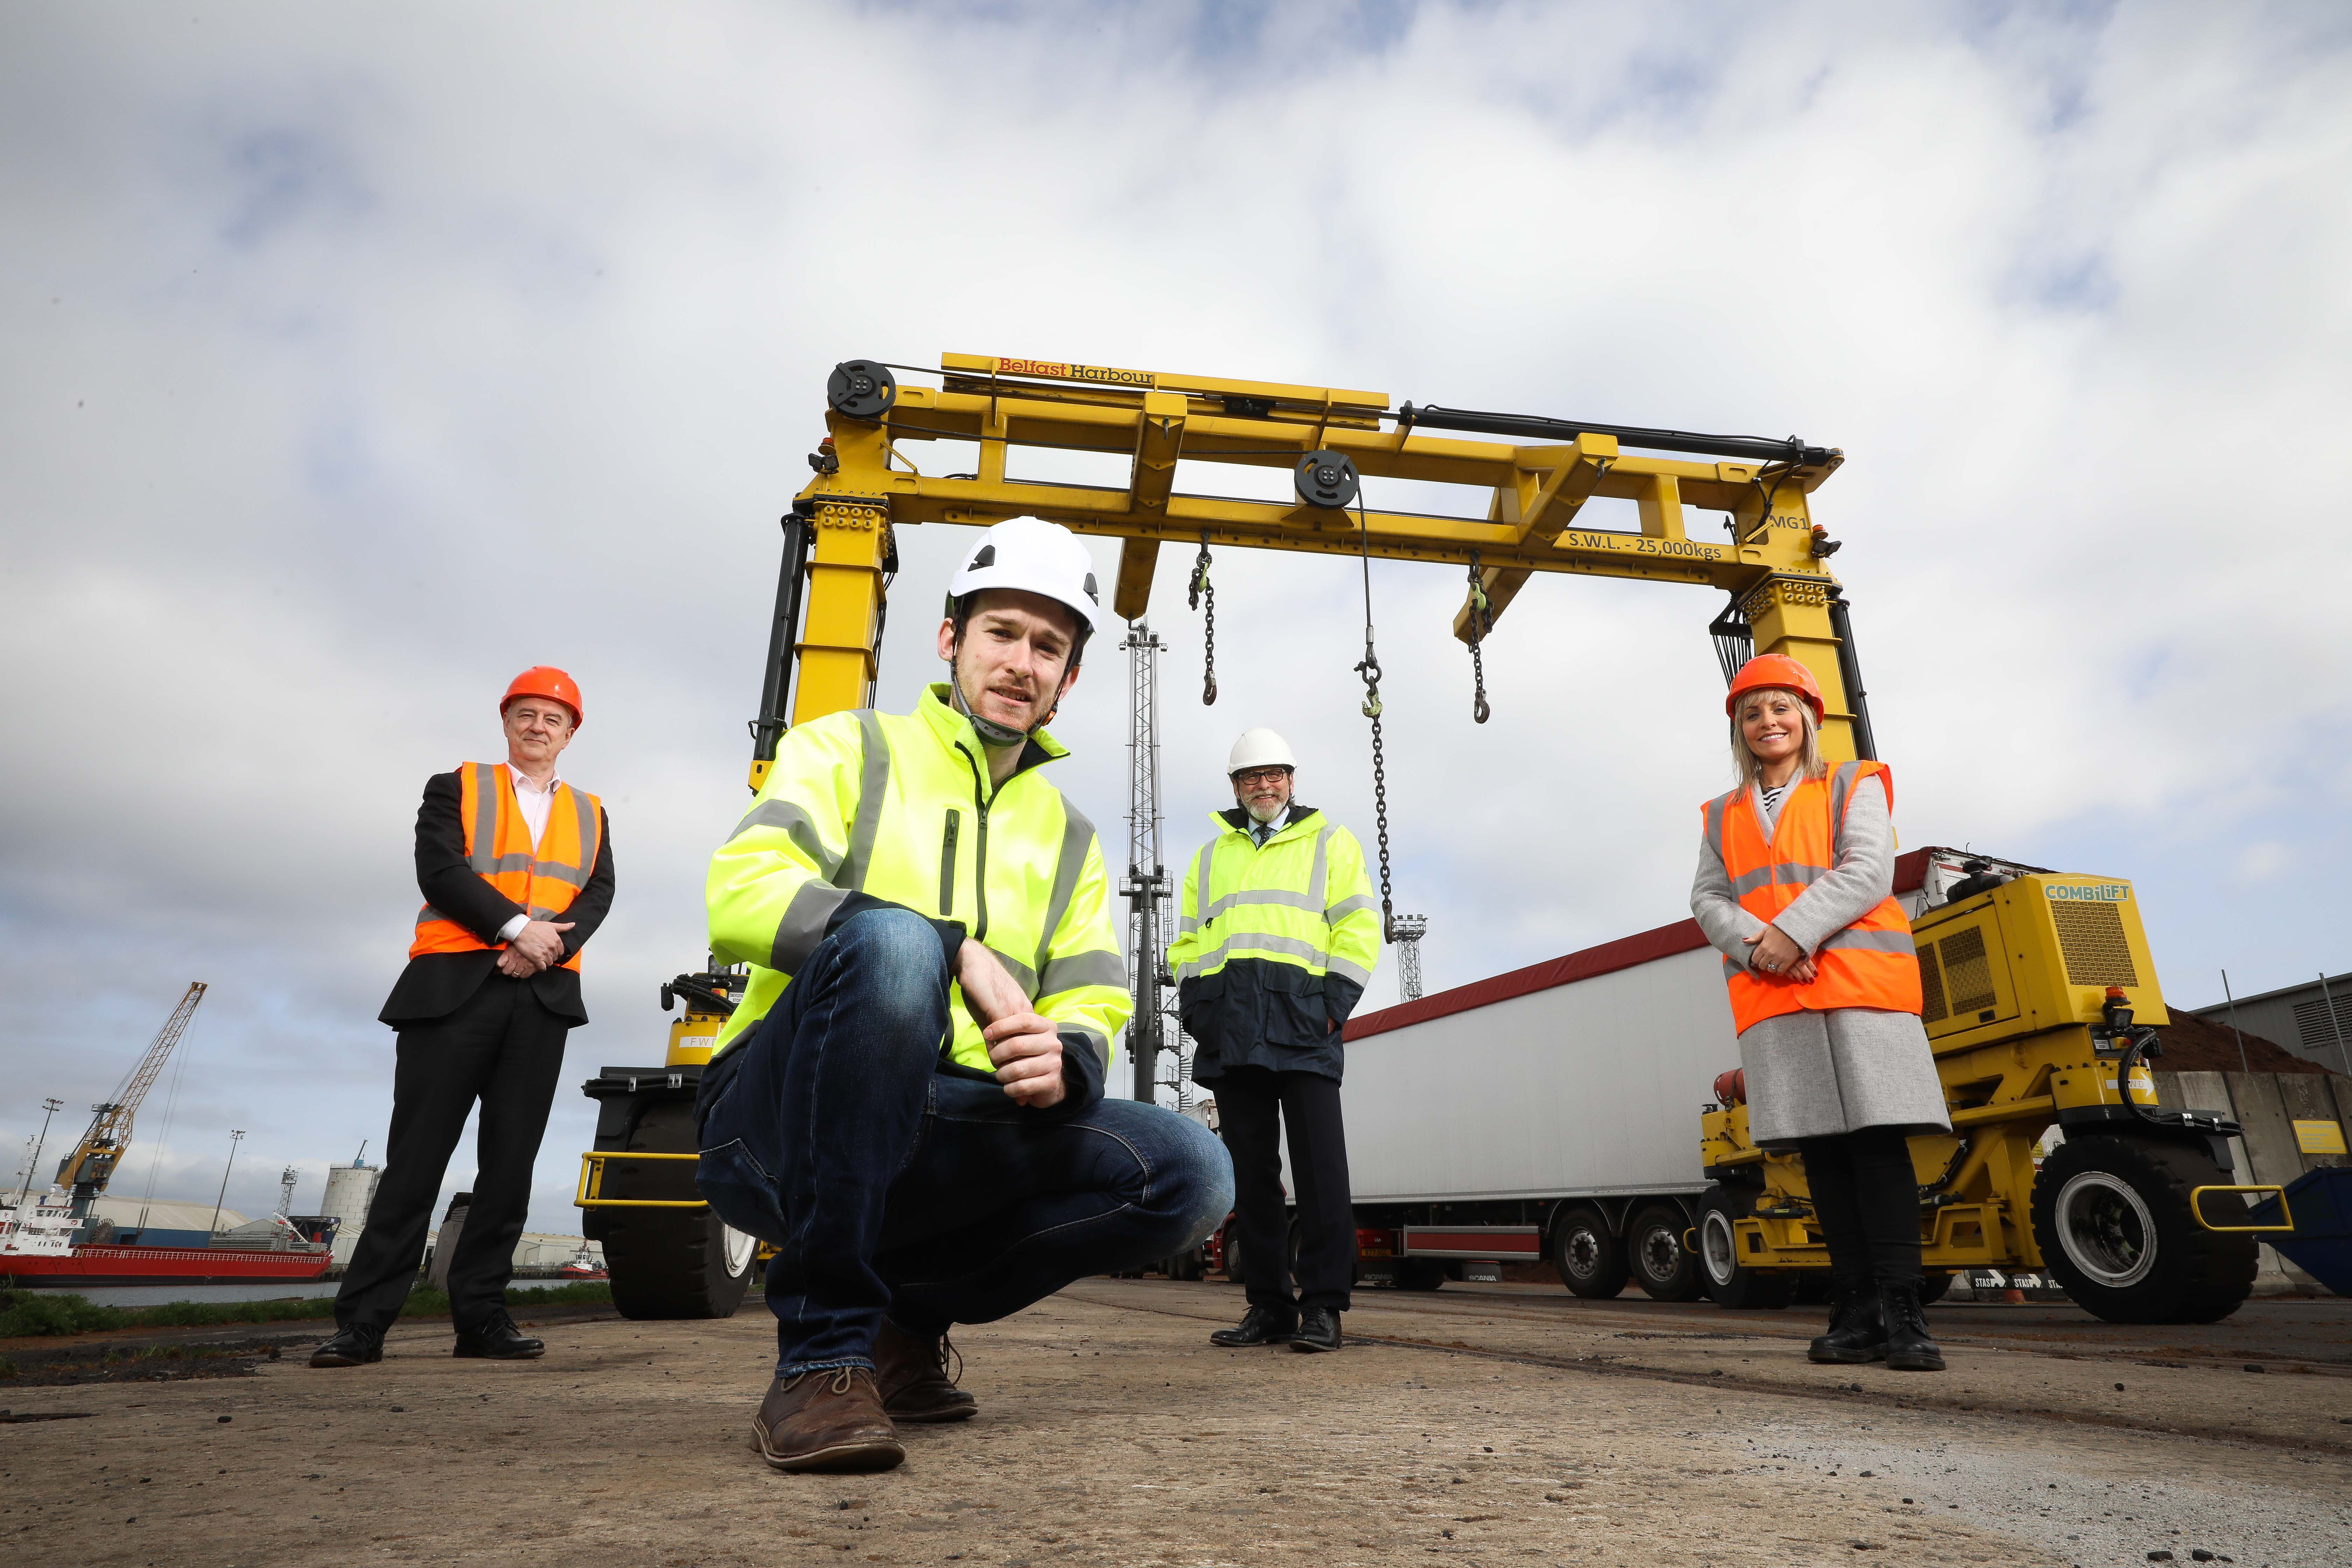 Machine Eye wins £75k funding from Techstart Ventures and Belfast Harbour, with support from BT.